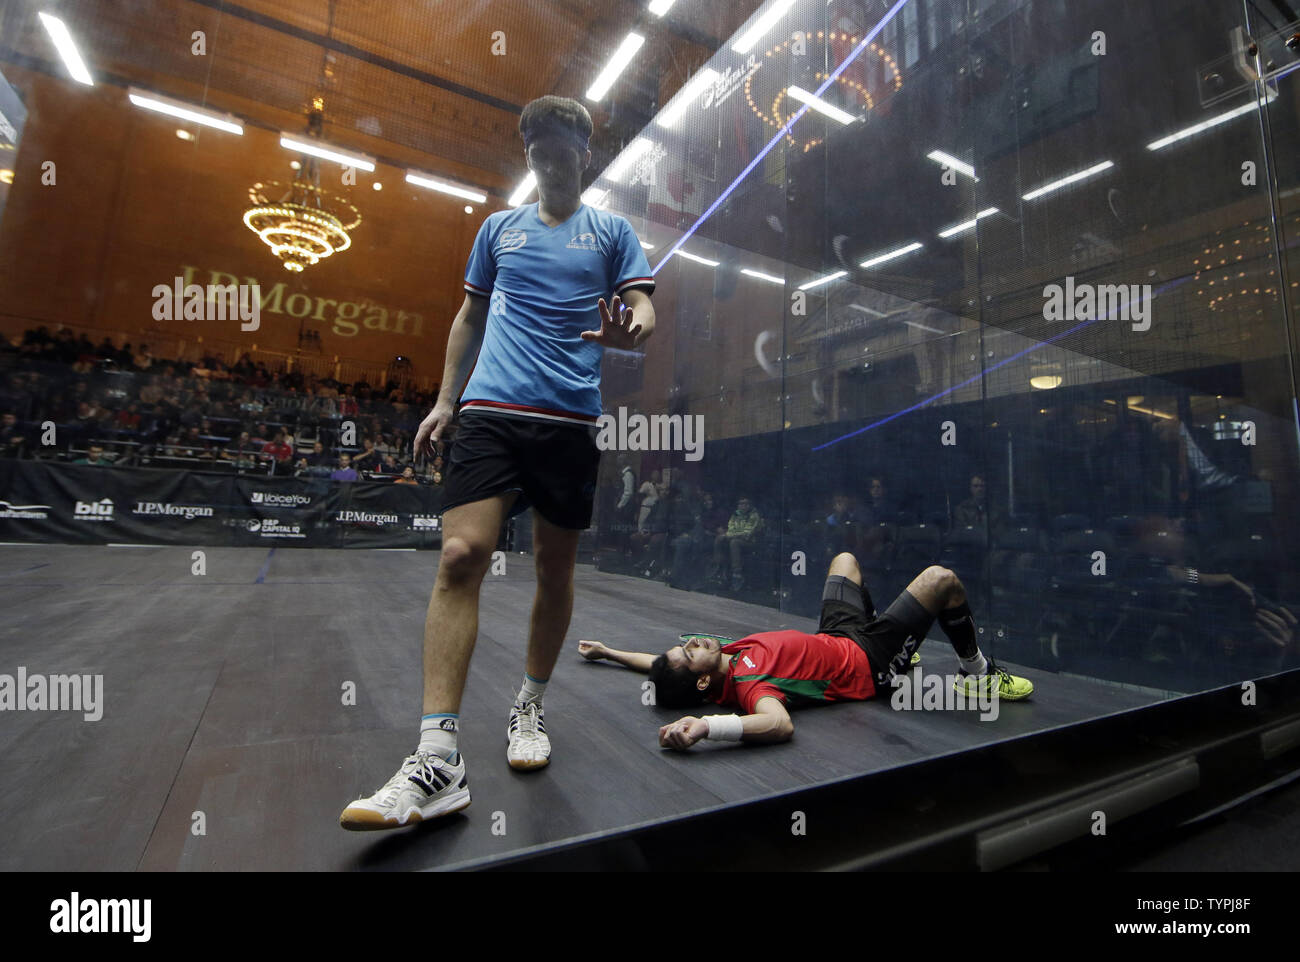 Chris Simpson of England walks by Cesar Salazar of Mexico who falls down falls to the court during a point at JPMorgan Chase & Co.'s 18th annual  'Tournament of Champions' Professional Squash Tournament in Grand Central Terminal in New York City on January 16, 2015. The annual tournament is scheduled to continue through January 23rd.       Photo by John Angelillo/UPI - Stock Image